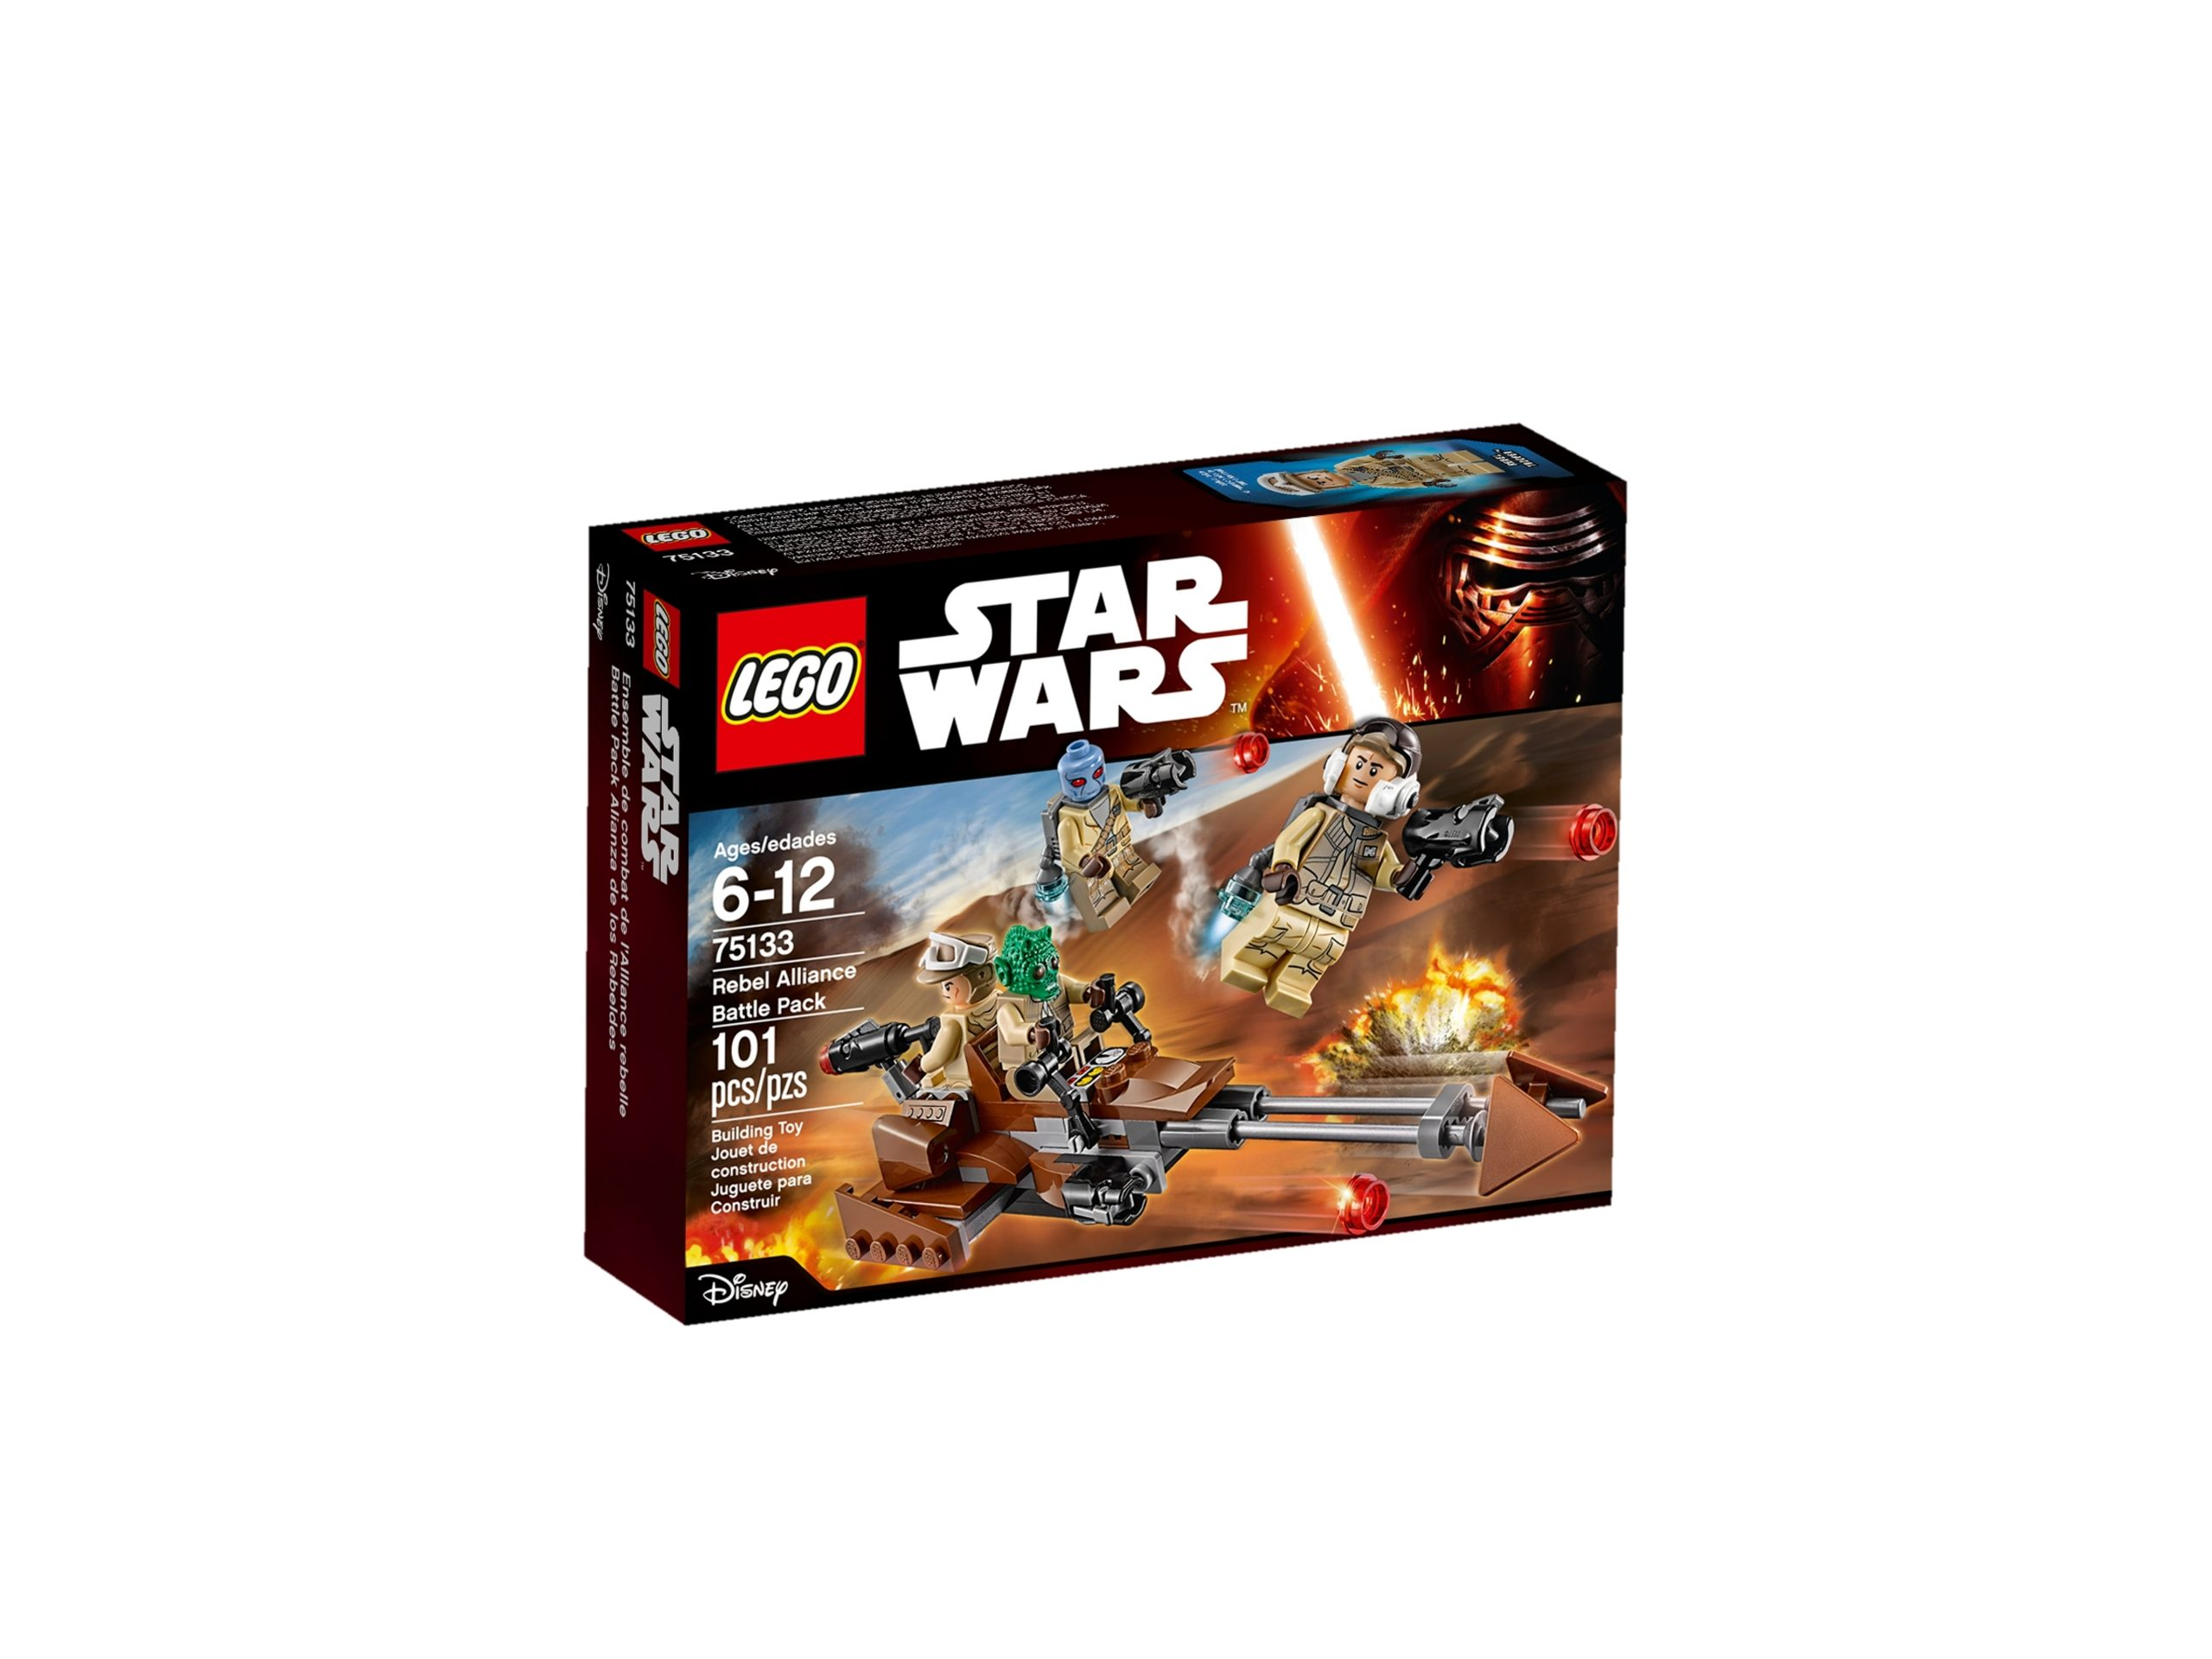 lego 75133 rebel alliance battle pack scaled